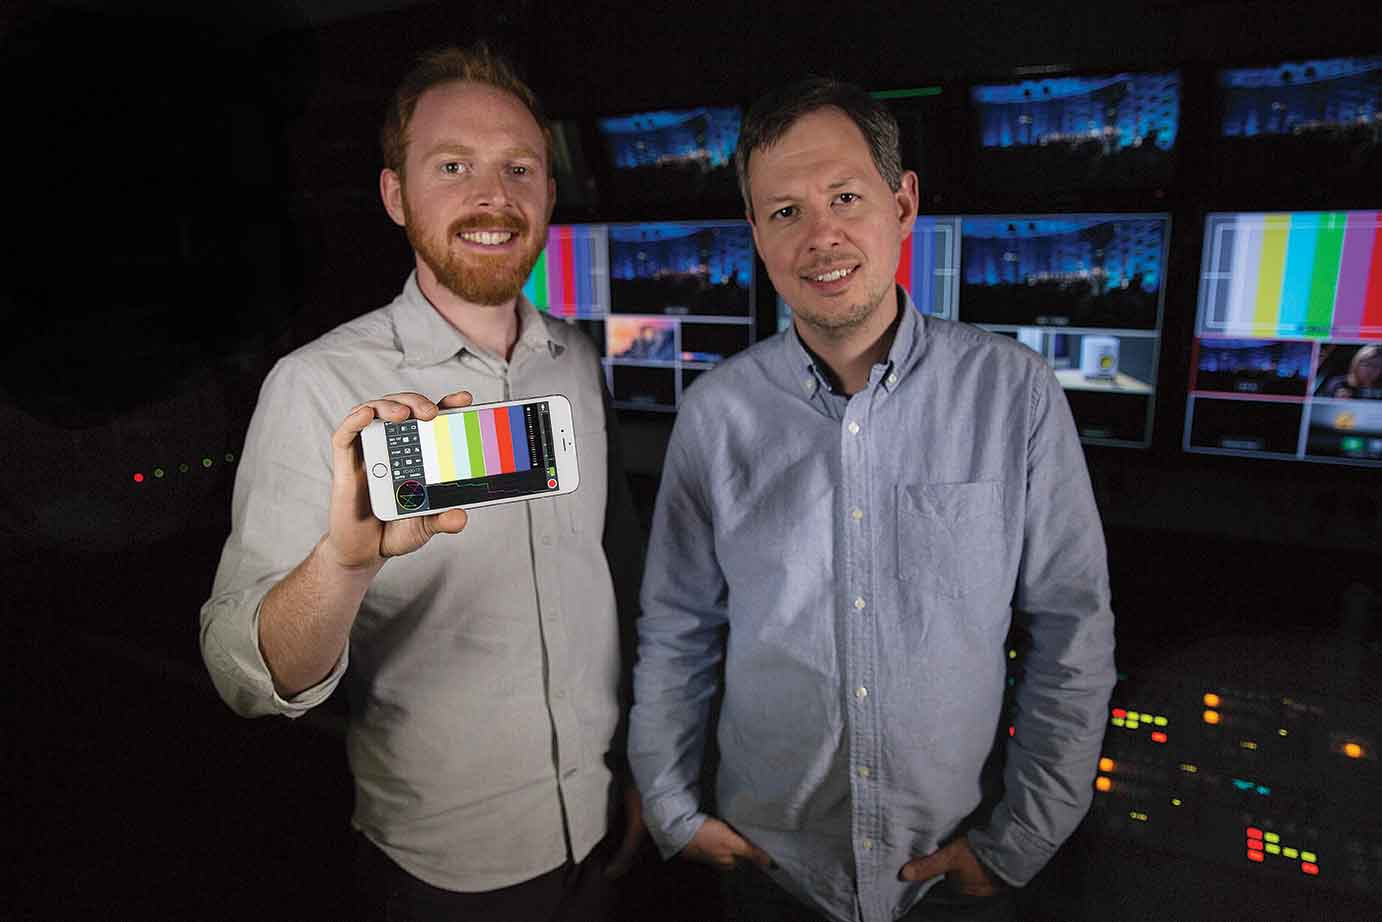 The iPhone Pros with 'Mavis' their new App. Left: Patrick Holroyd, Right: Phil Watten.